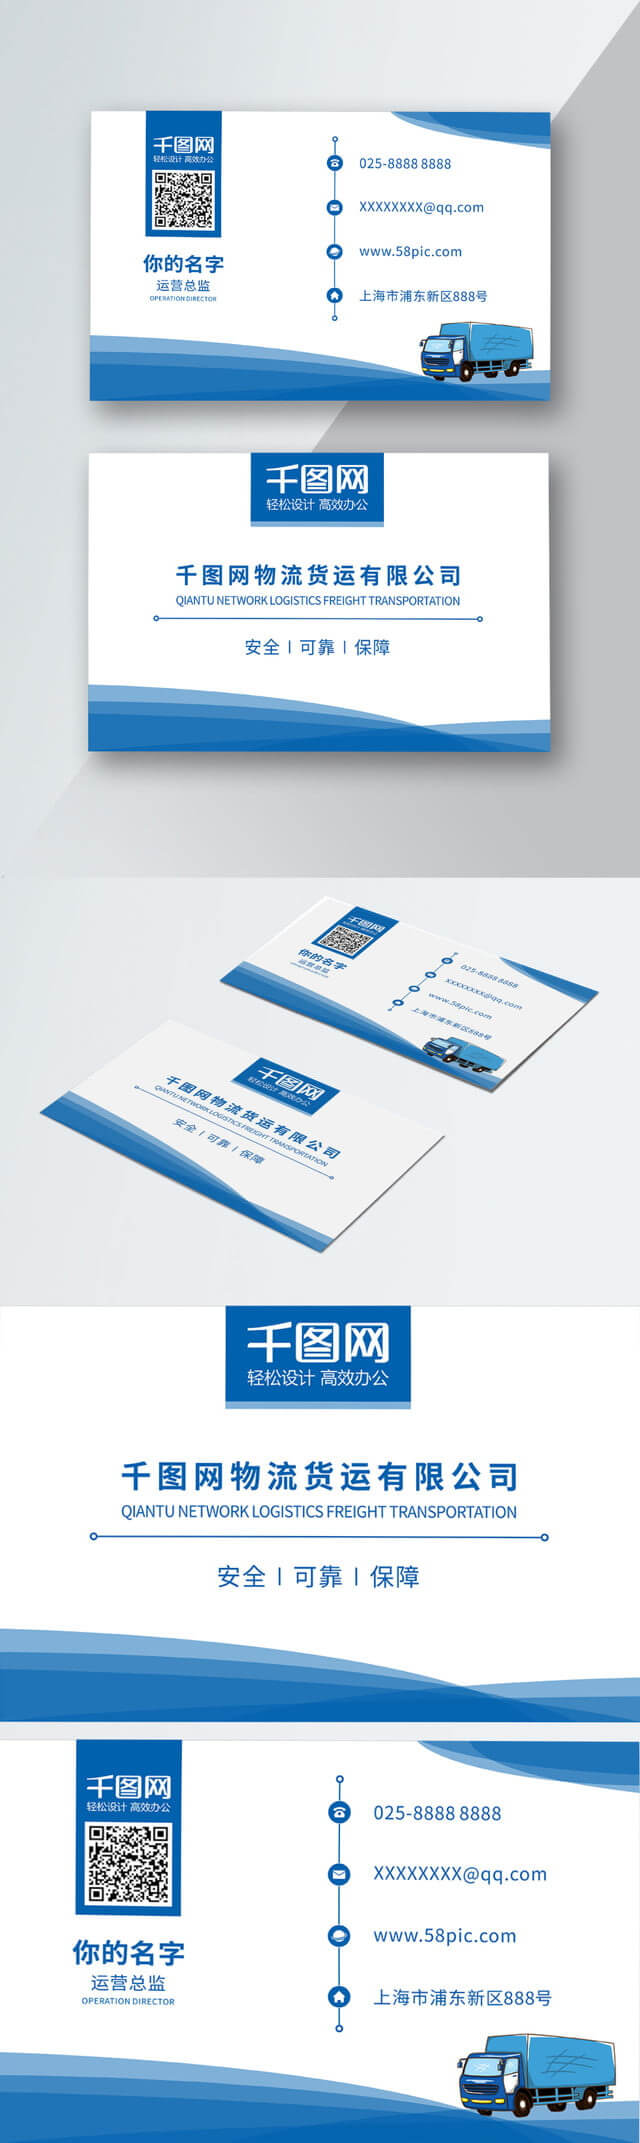 Cargo Company Business Card Material Download Shipping For Transport Business Cards Templates Free